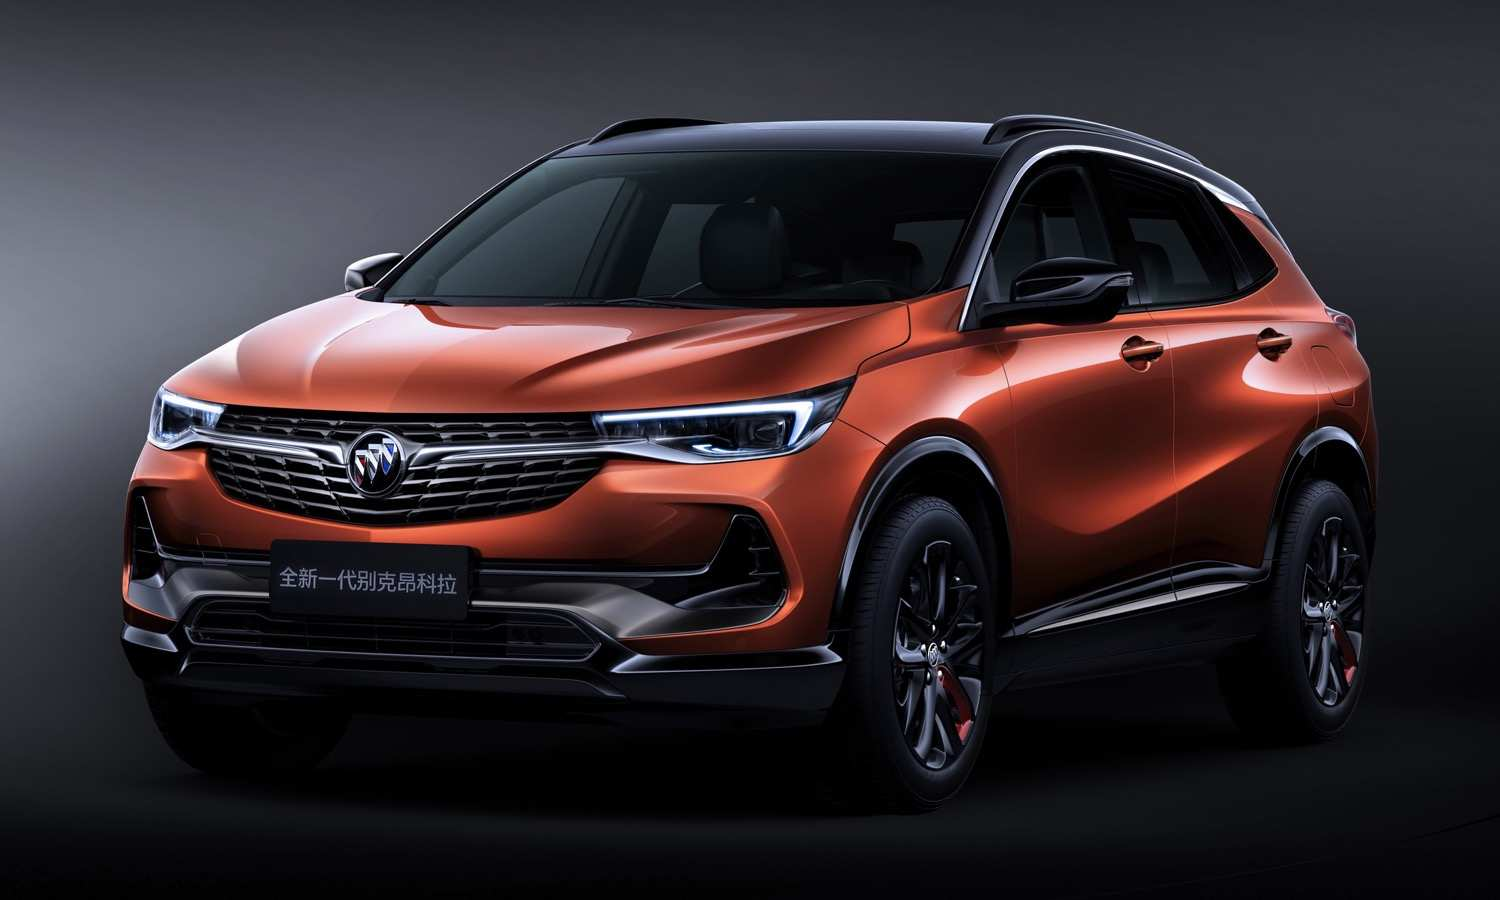 54 Concept of When Will The 2020 Buick Encore Be Available Style by When Will The 2020 Buick Encore Be Available